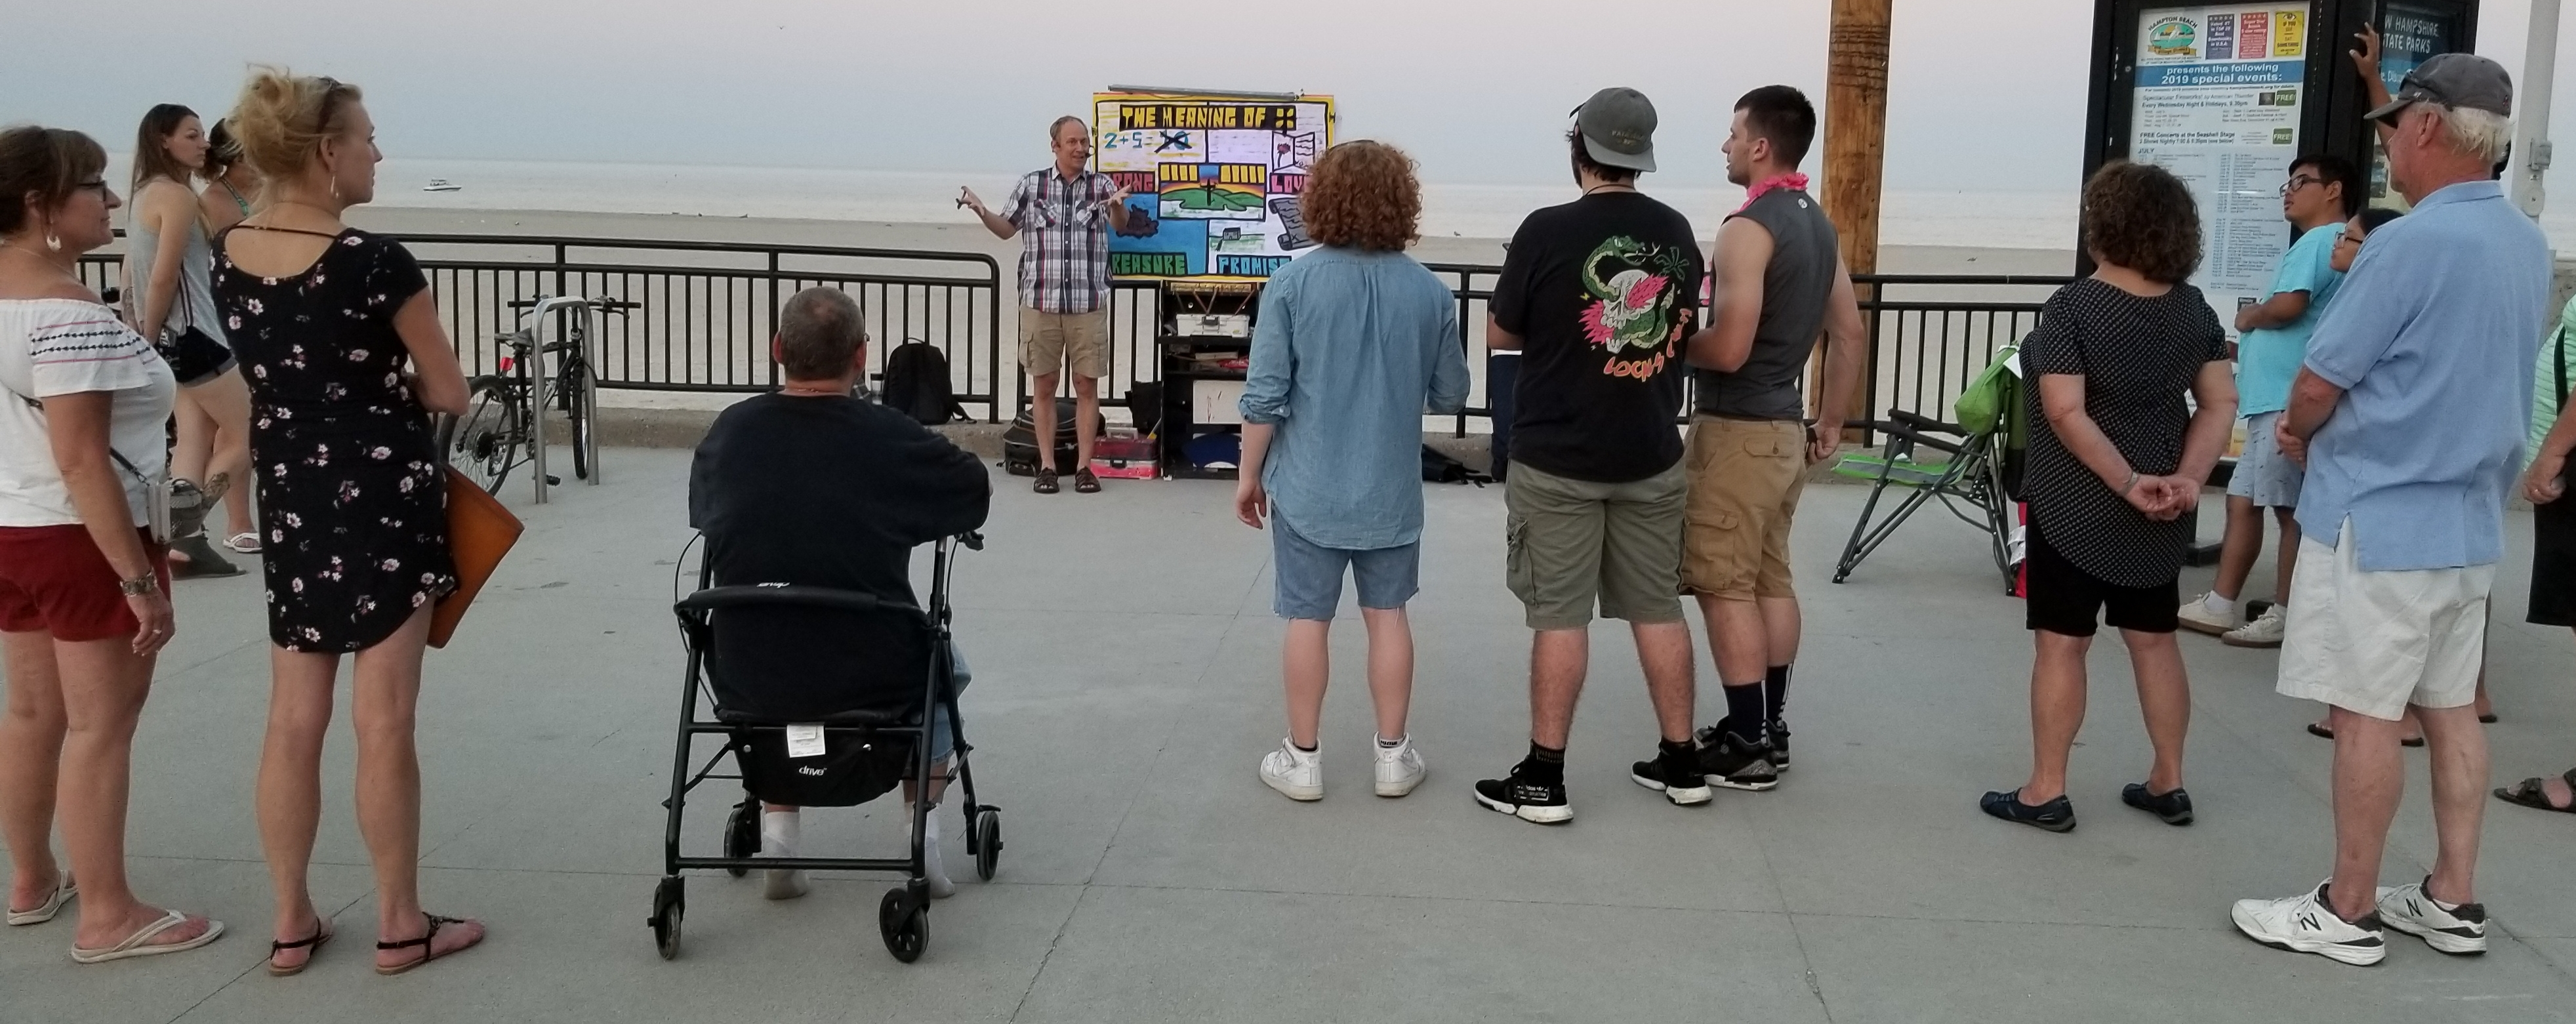 Chris giving an Open Air message. The man in the chair is George. He listened to the whole message and spoke with Chris afterward. More on that encounter in the photo below...